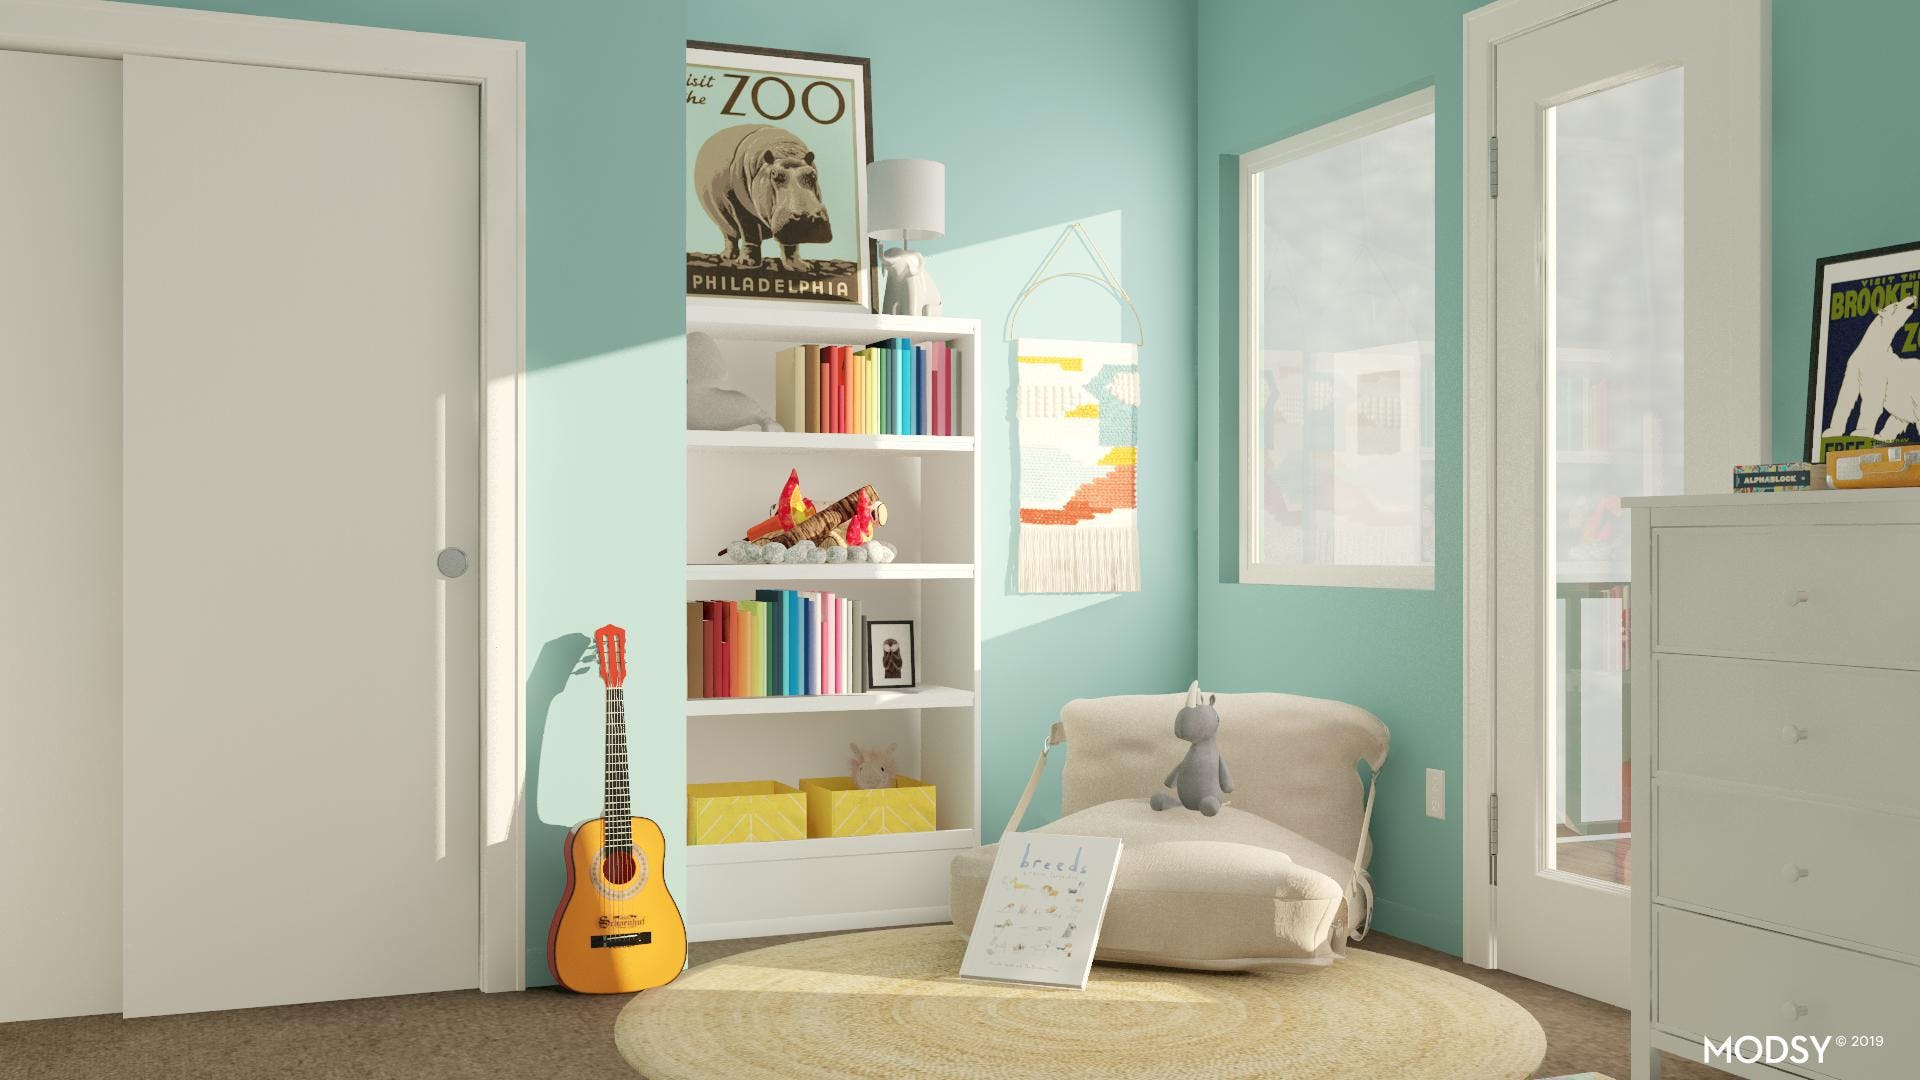 Cozy Up In This Kid-Friendly Reading Nook